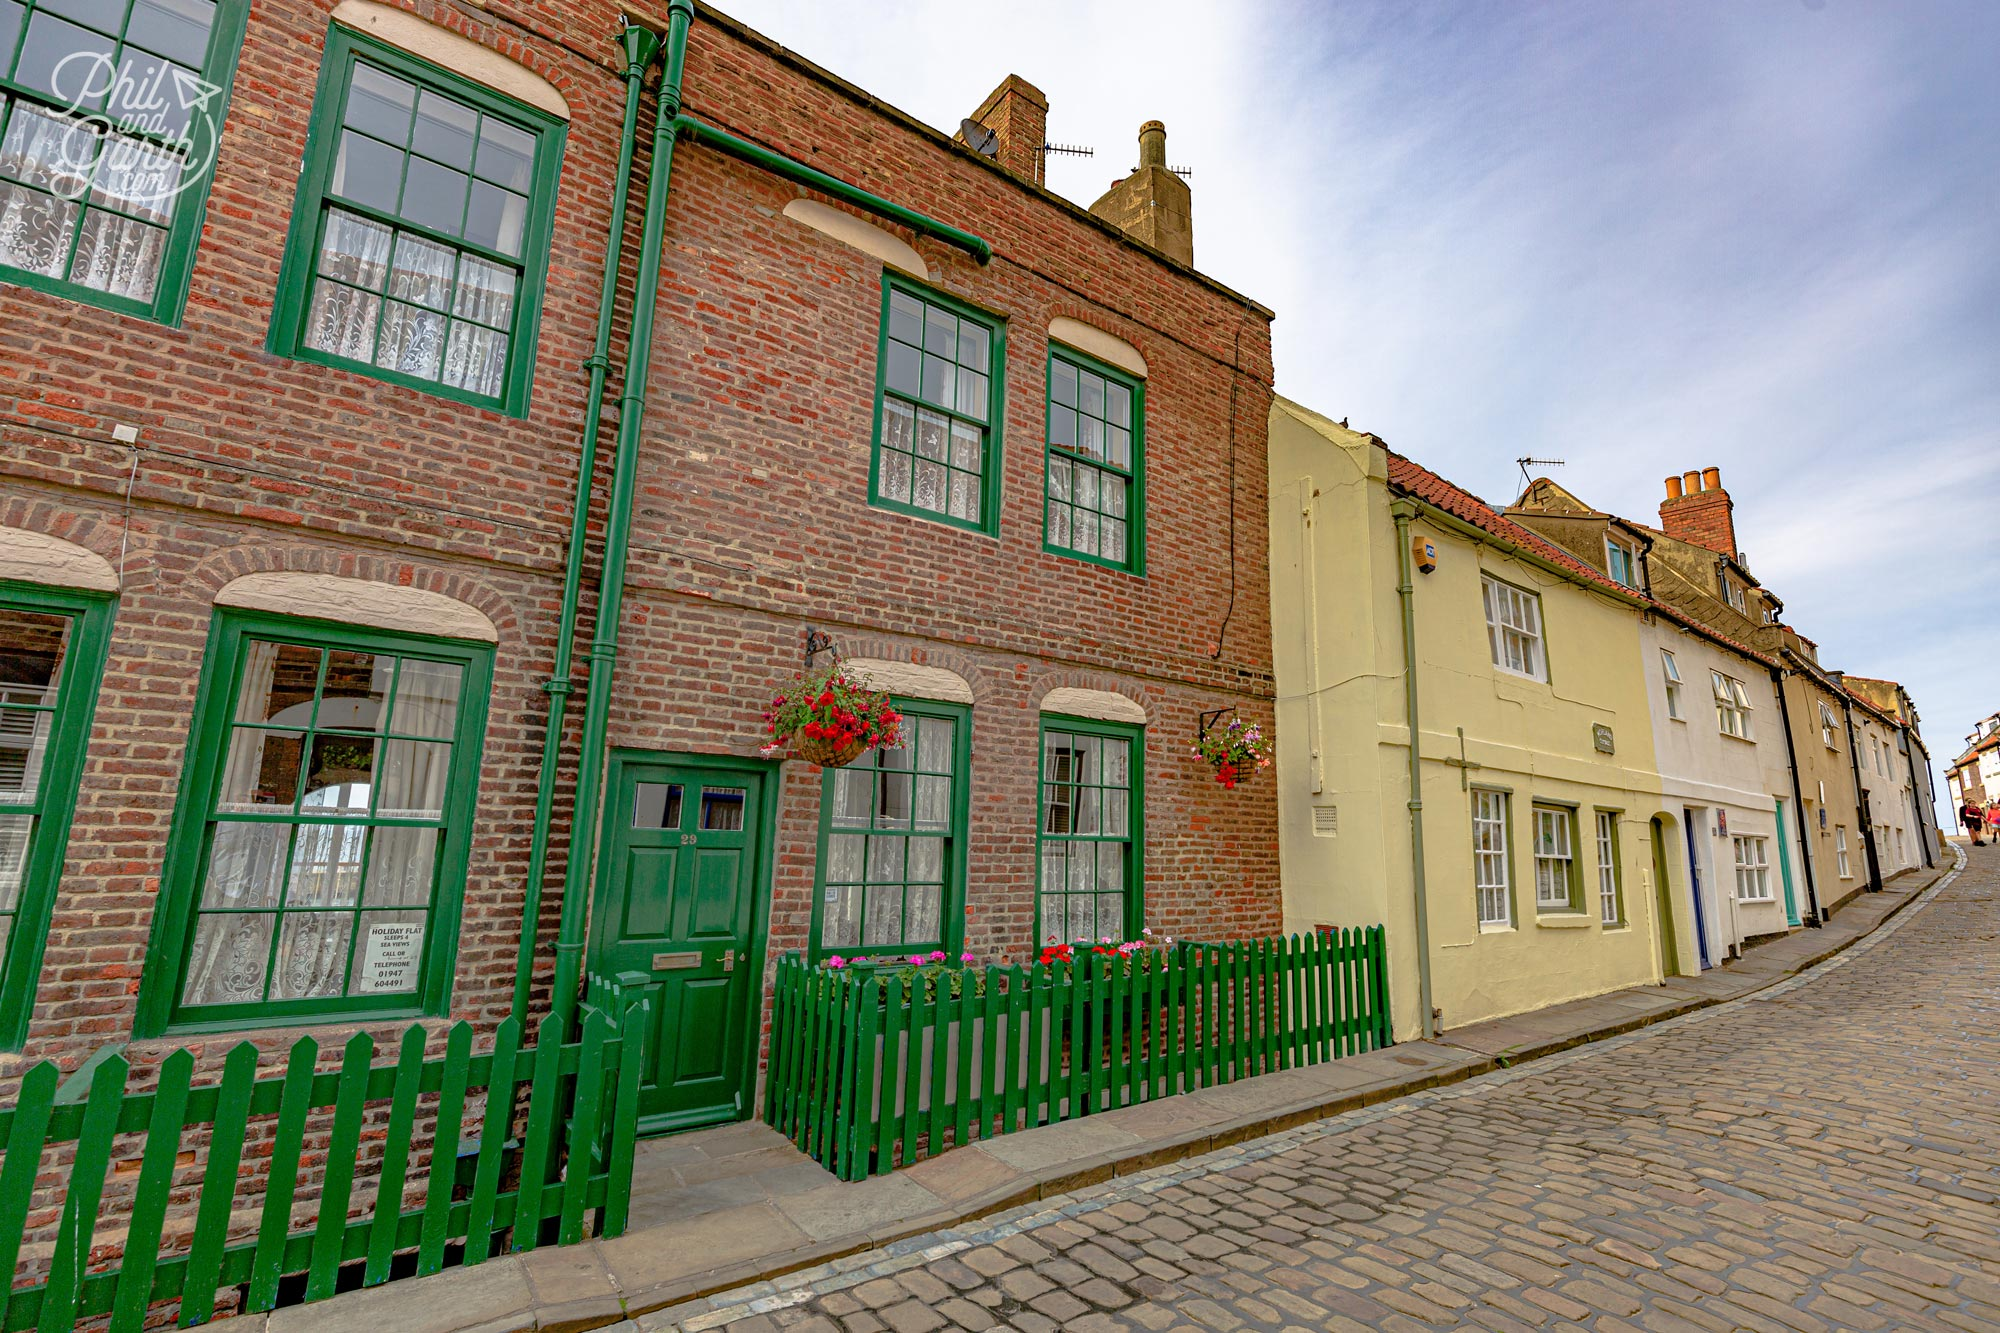 The pretty cobbled lanes in Whitby's old town centre